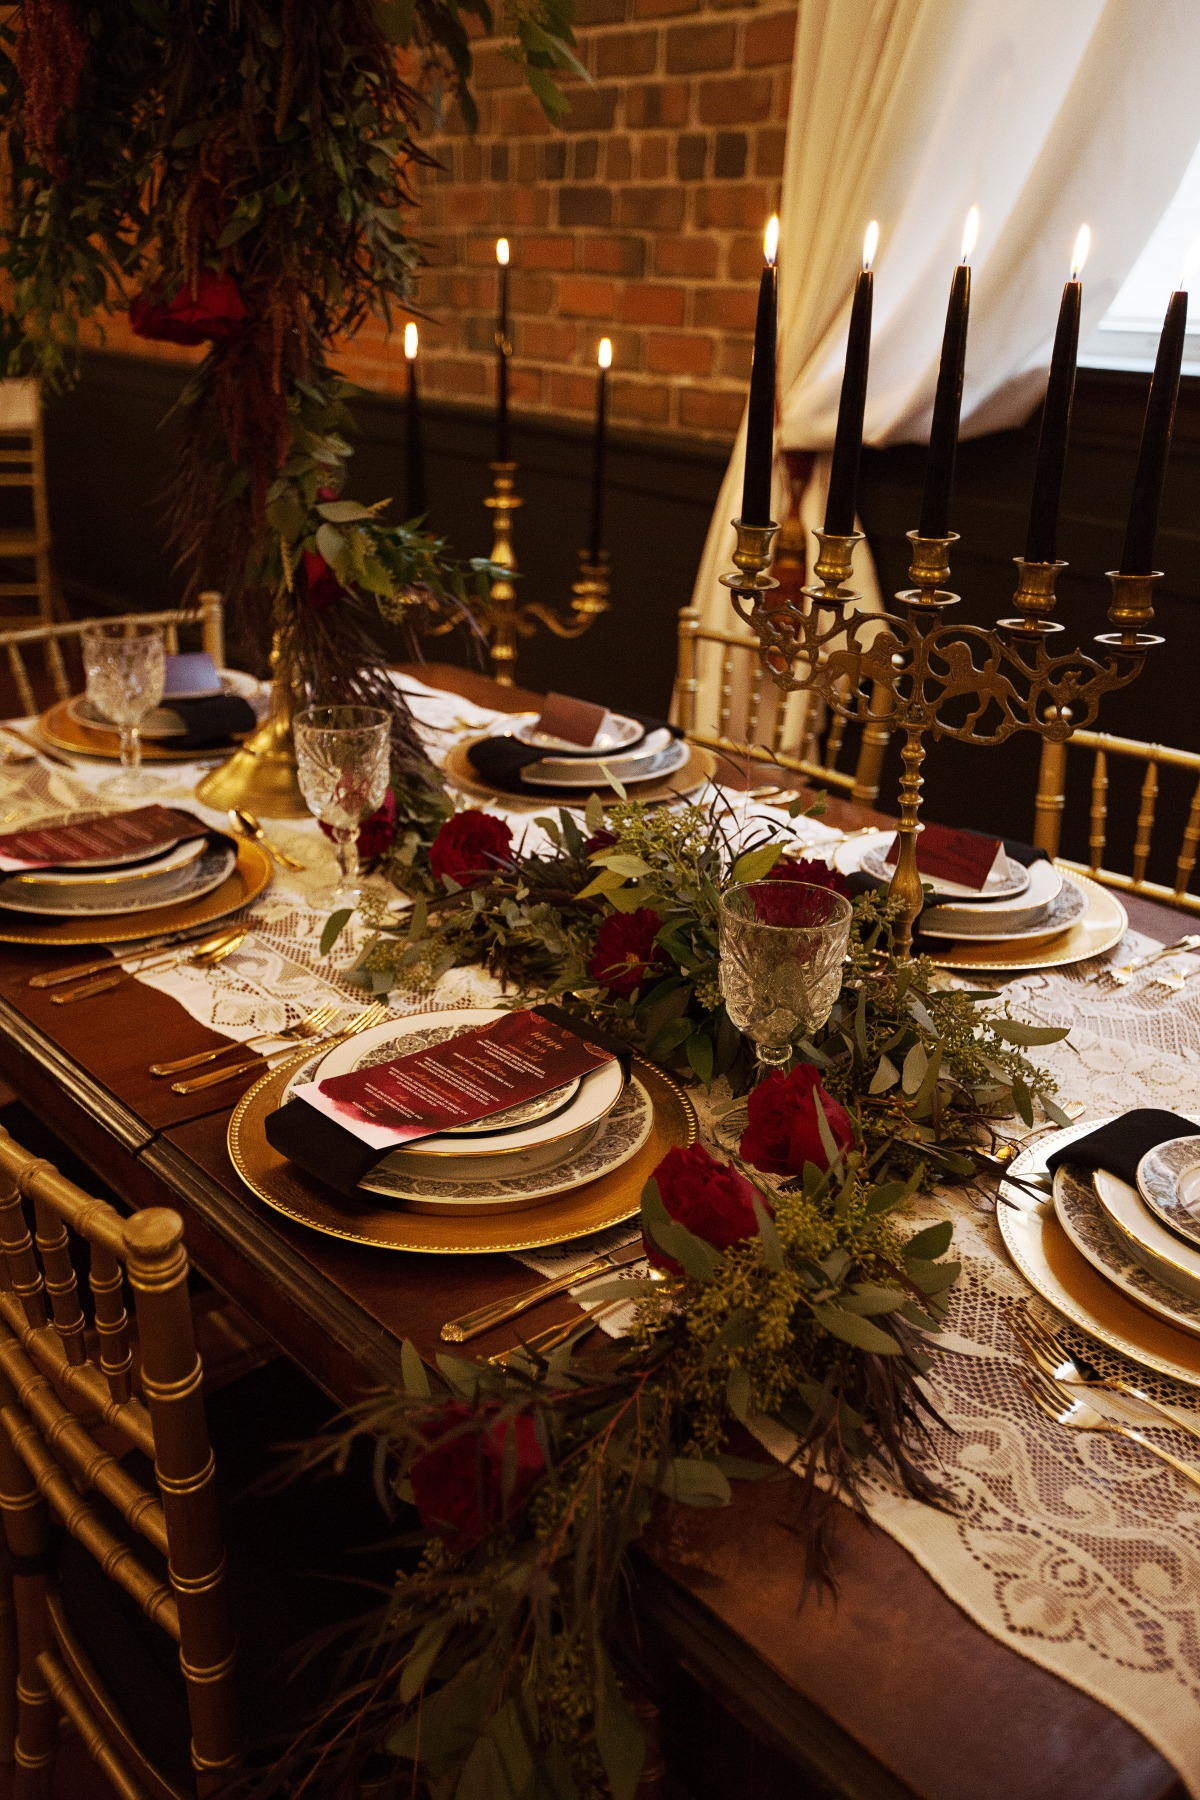 winter season wedding table decor in gold and burgundy